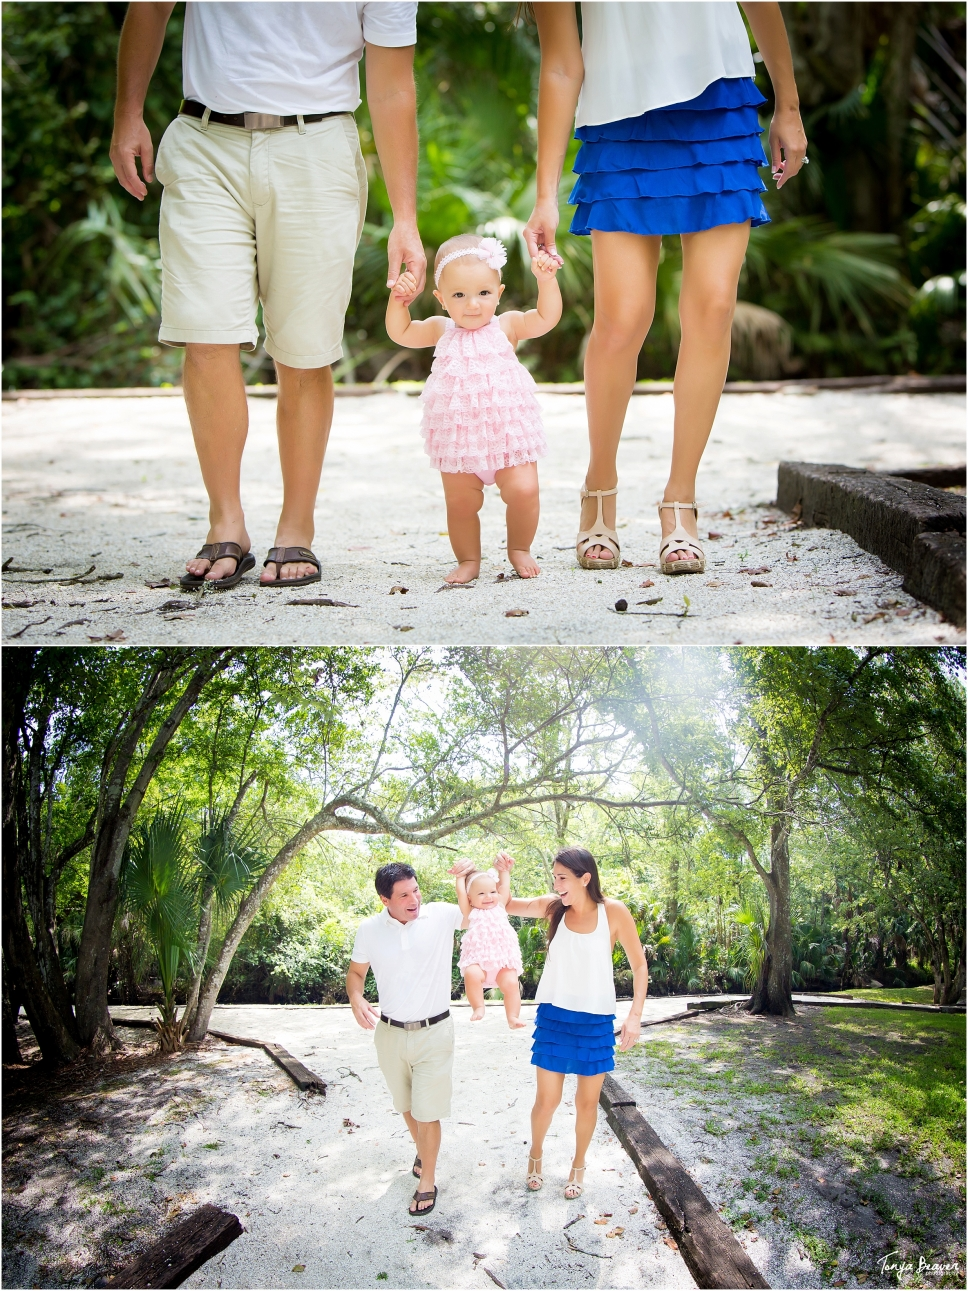 jacksonville-family-photographer-atlantic-beach-family-photographer-jacksonville-photography-studio-one-year-photos-howell-park-family-photos-tonya-beaver-photography003